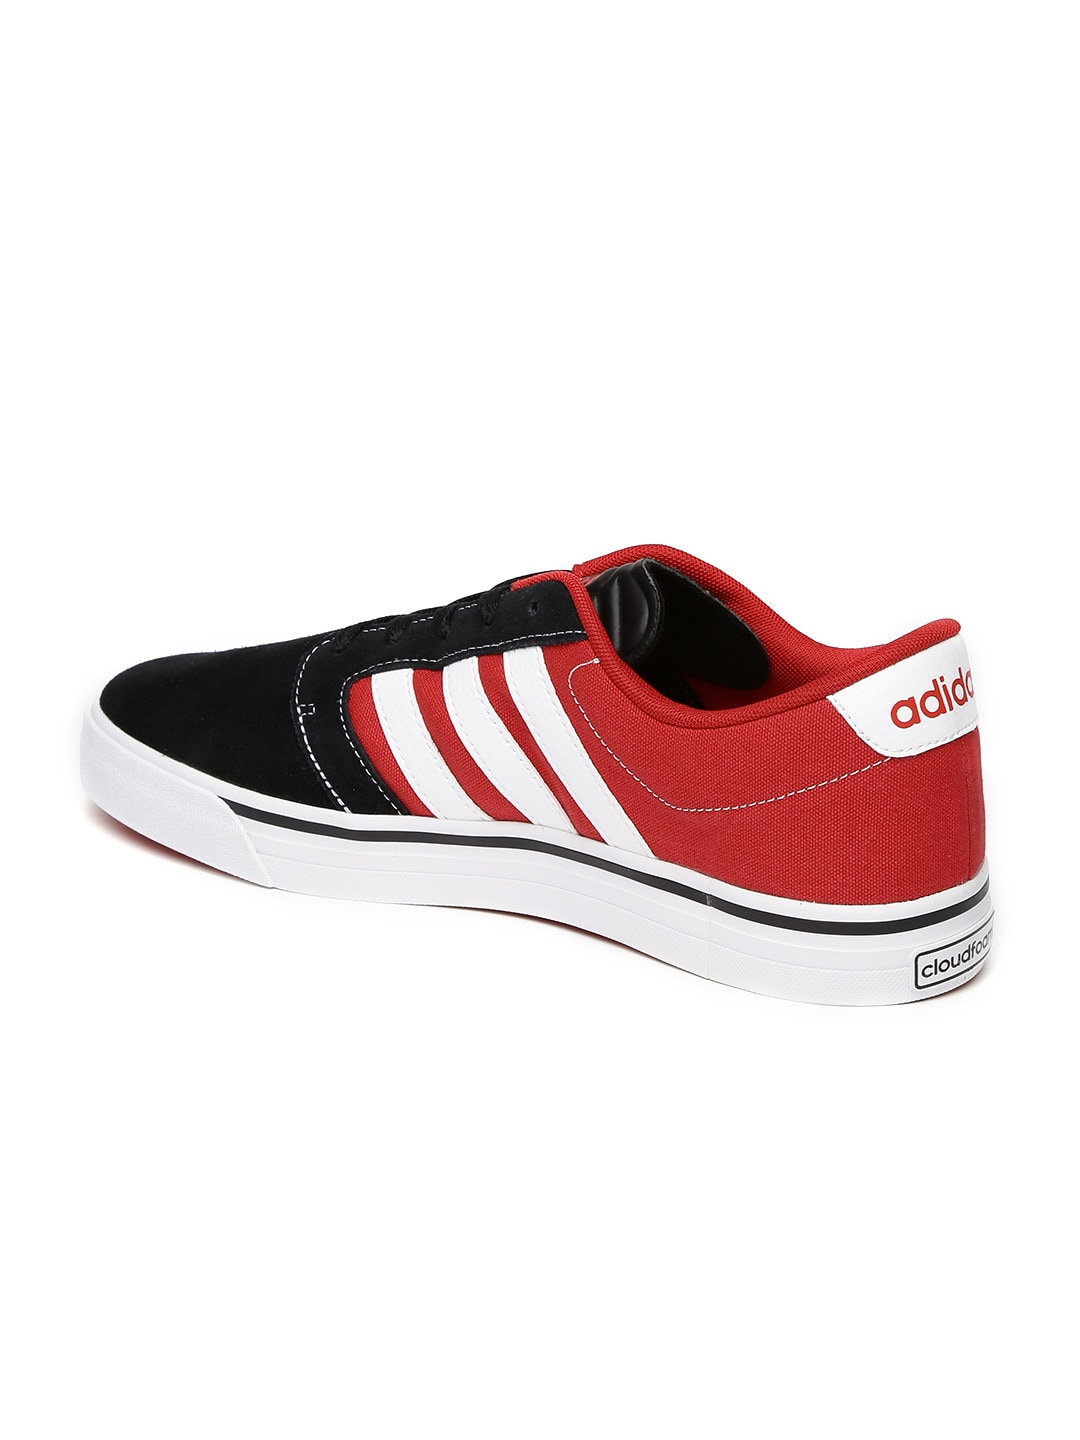 ... adidas neo leather red black ...